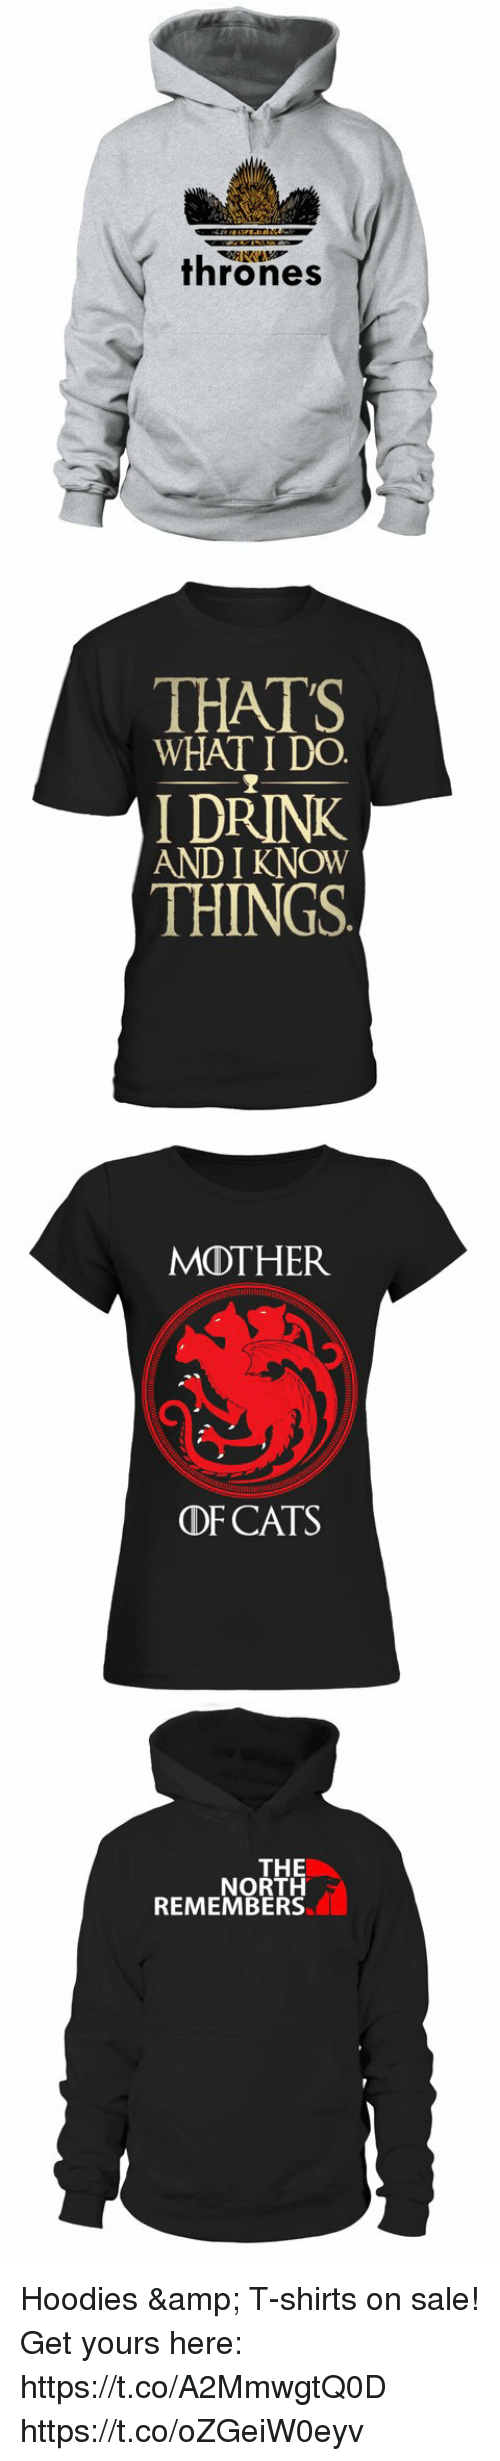 Cats, Memes, and 🤖: kr  thrones   THATS  WHAT I D0.  I DRINK  AND I KNOW  THINGS   MOTHER  DF CATS   THE  NORTH  REMEMBERS Hoodies & T-shirts on sale! Get yours here: https://t.co/A2MmwgtQ0D https://t.co/oZGeiW0eyv